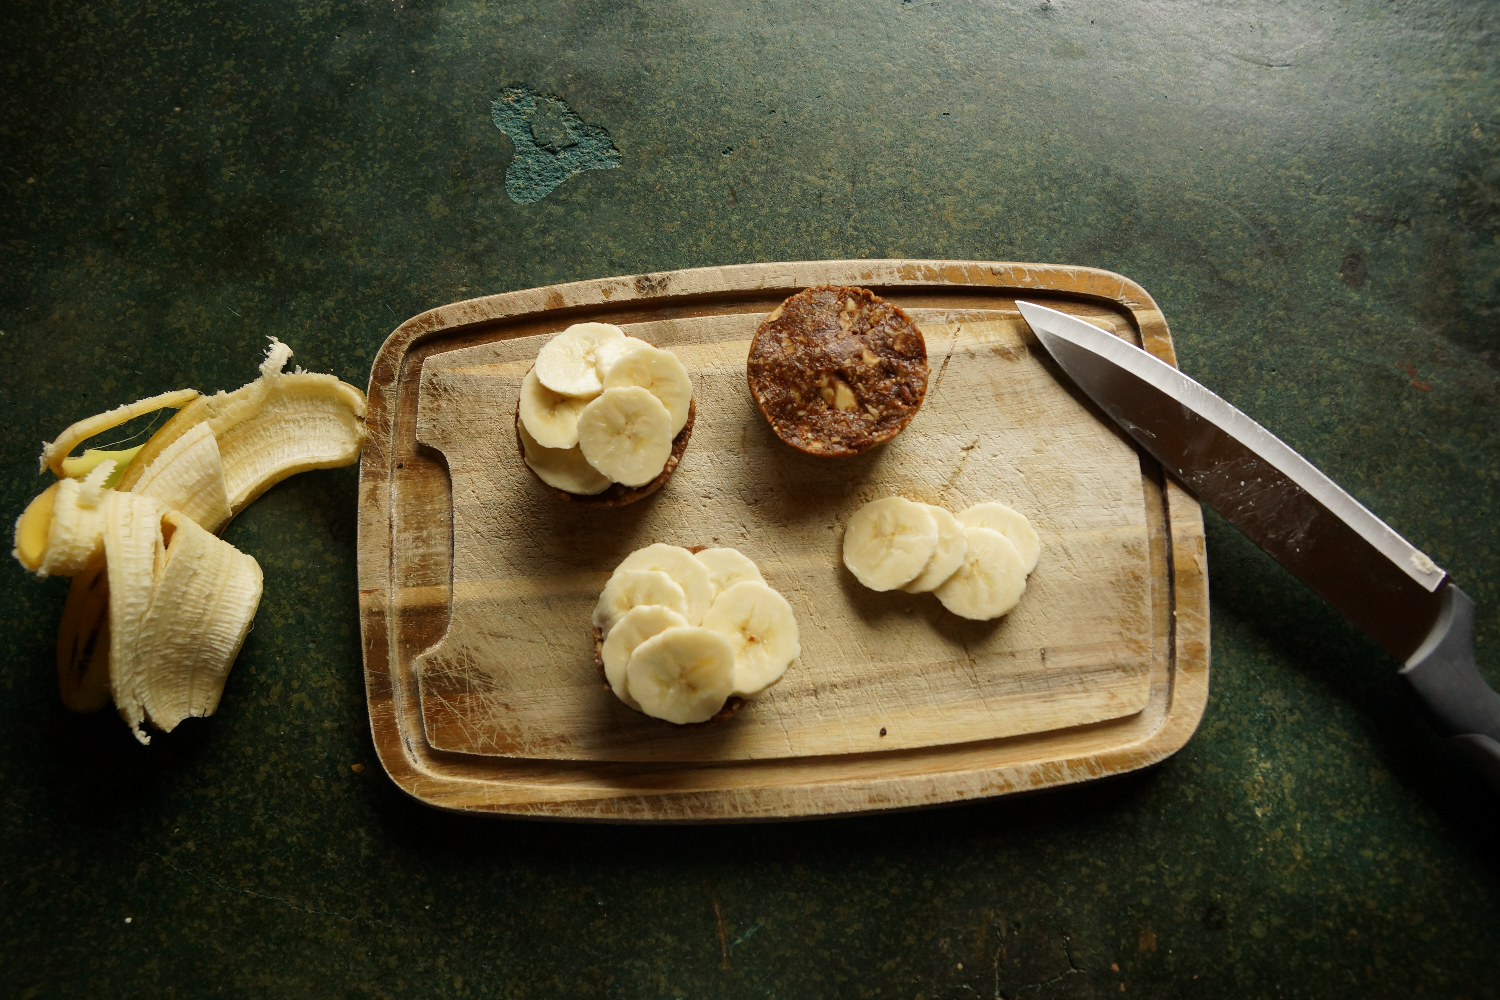 Raw vegan nut and fig cups with bananas | Rohkost, vegane Nuss und Feigen Küchlein mit Bananen